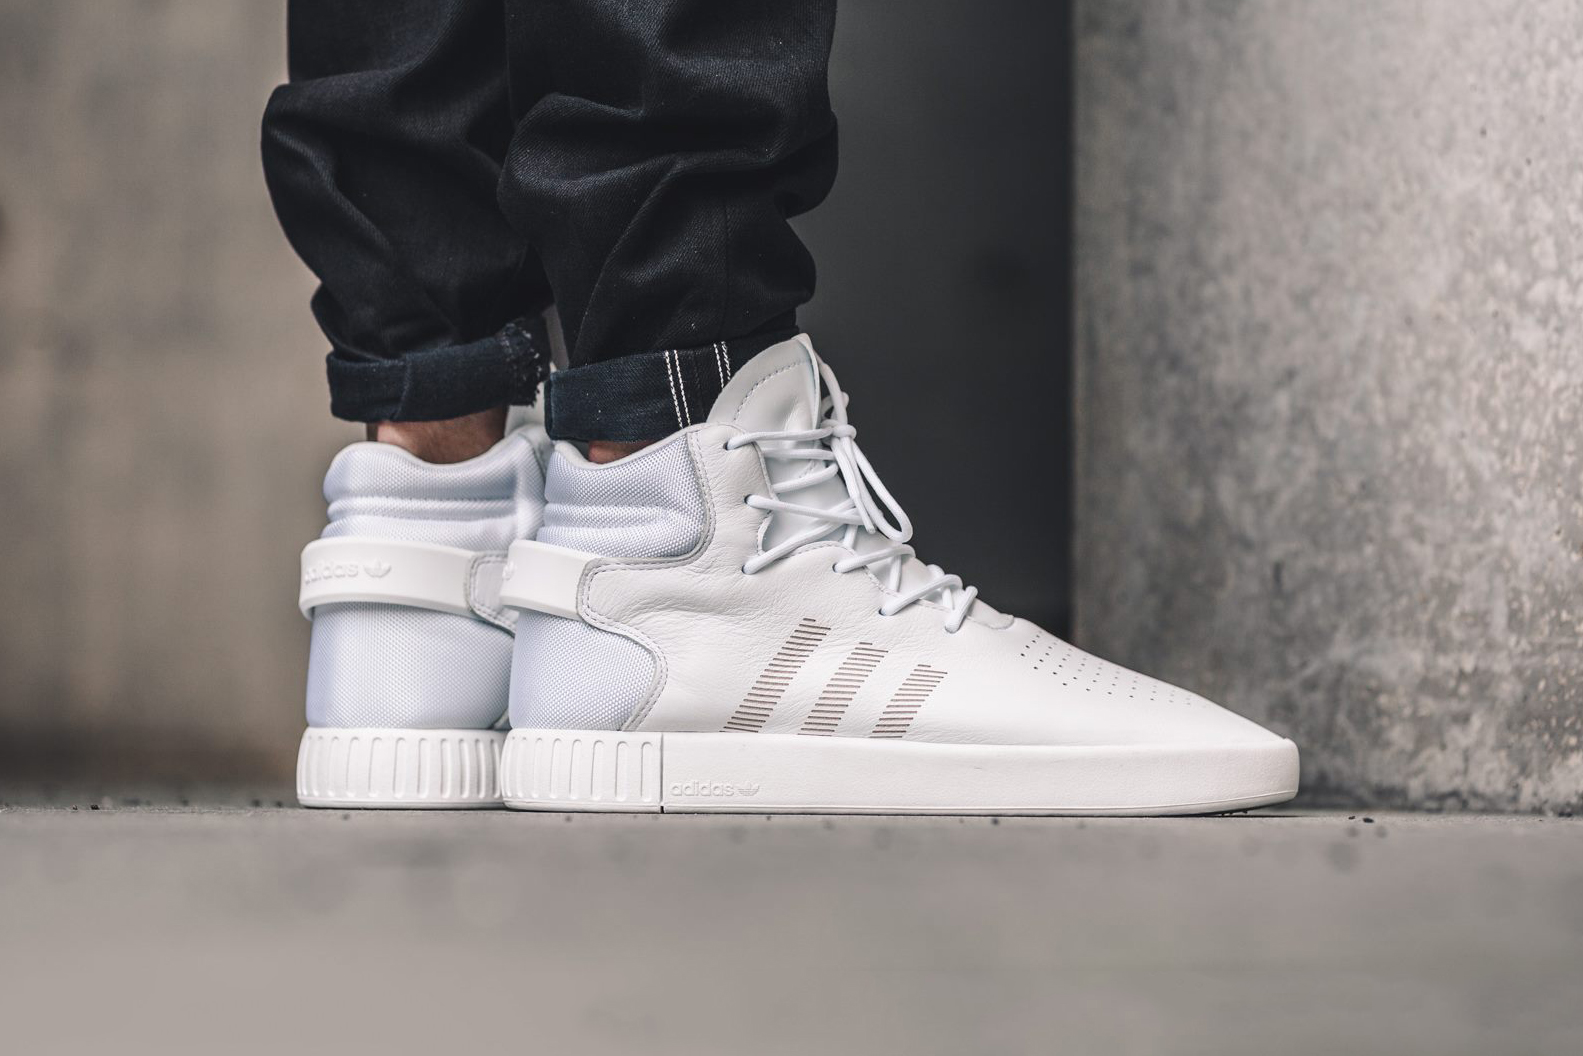 Adidas Originals Tubular Invader Strap Casual Sneakers